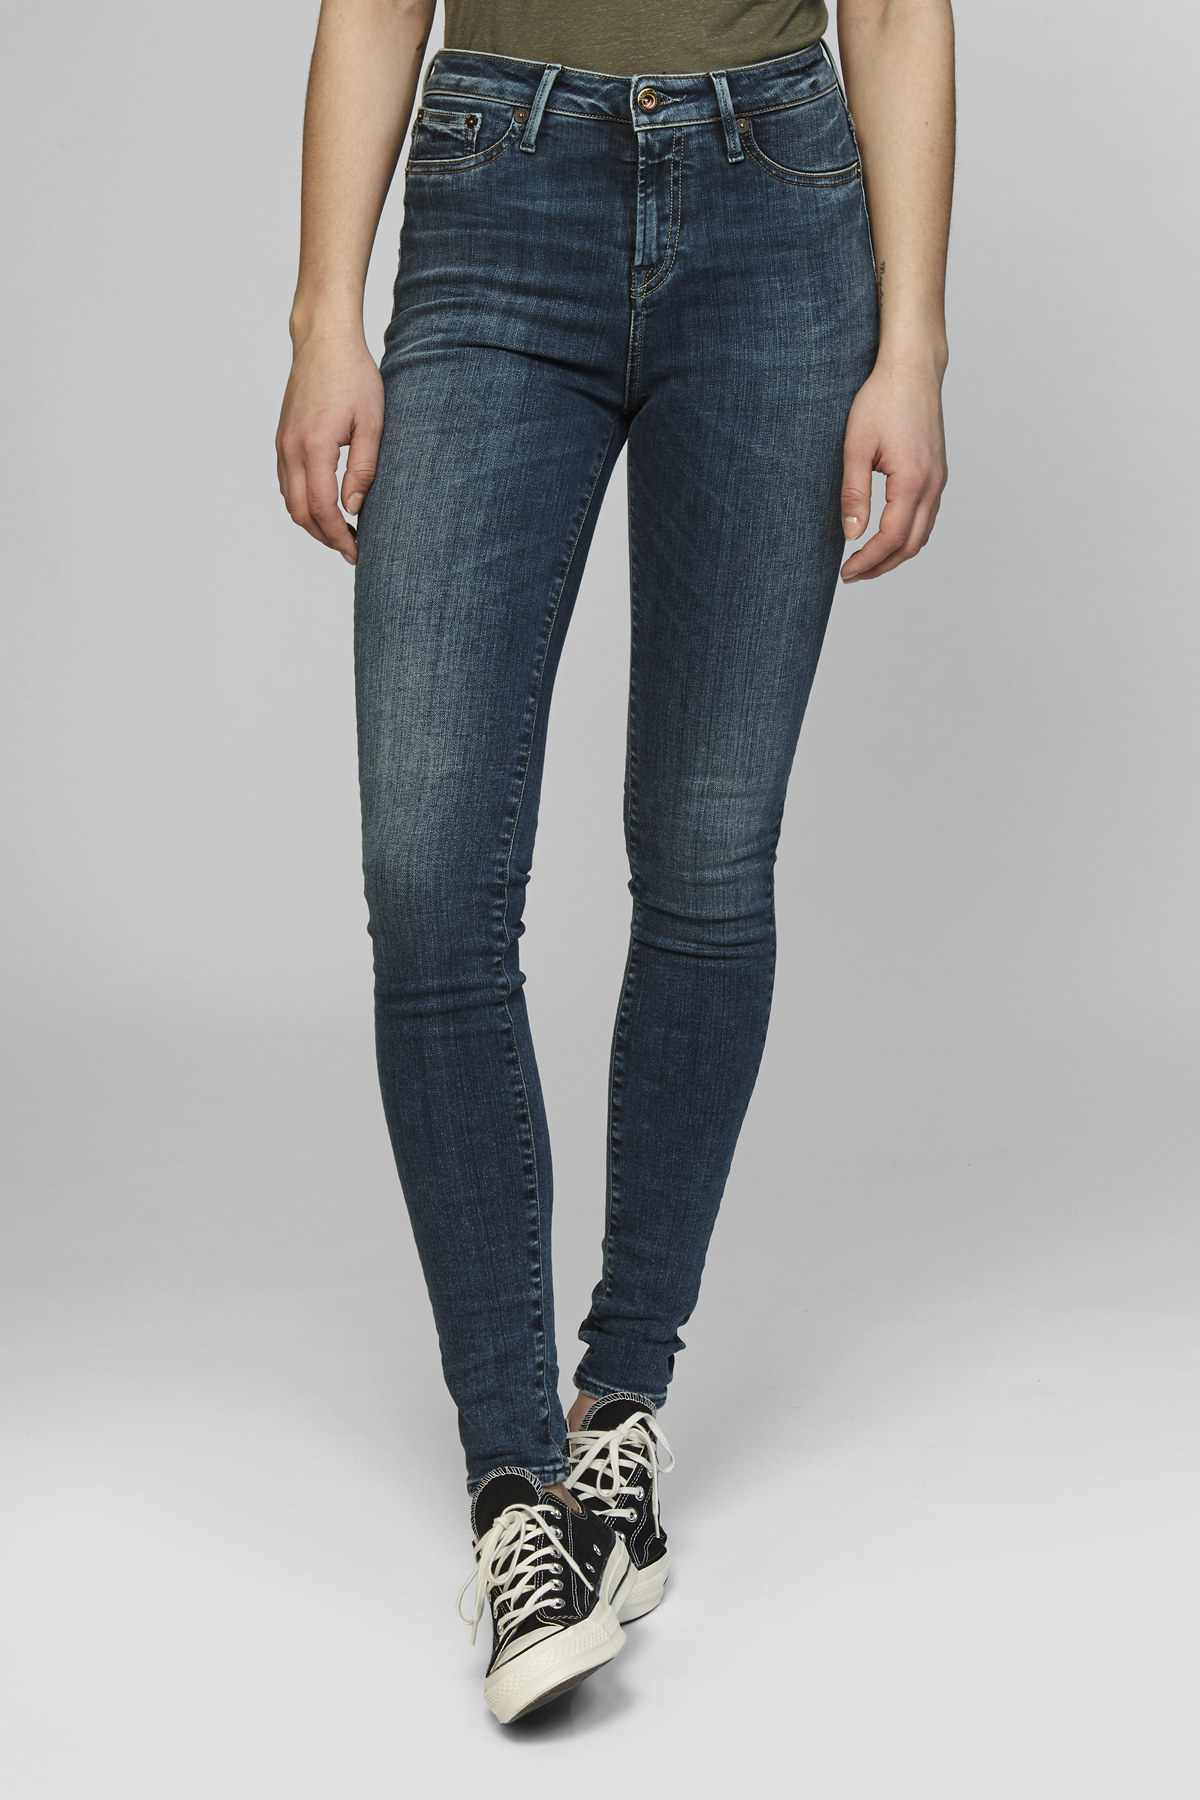 Needle High Skinny Fit Jeans R